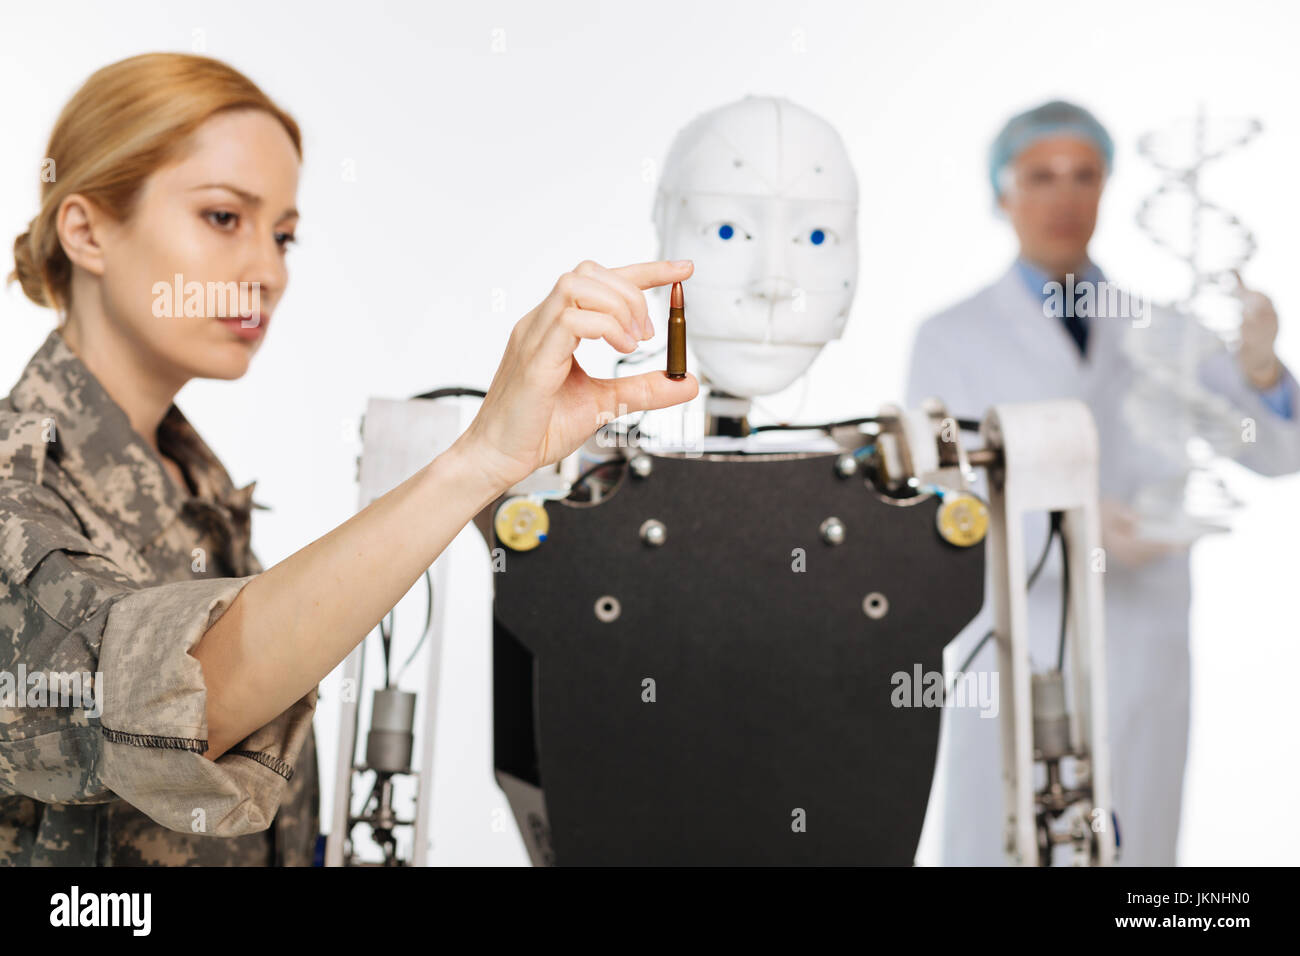 Brilliant skillful officer working in secret lab - Stock Image